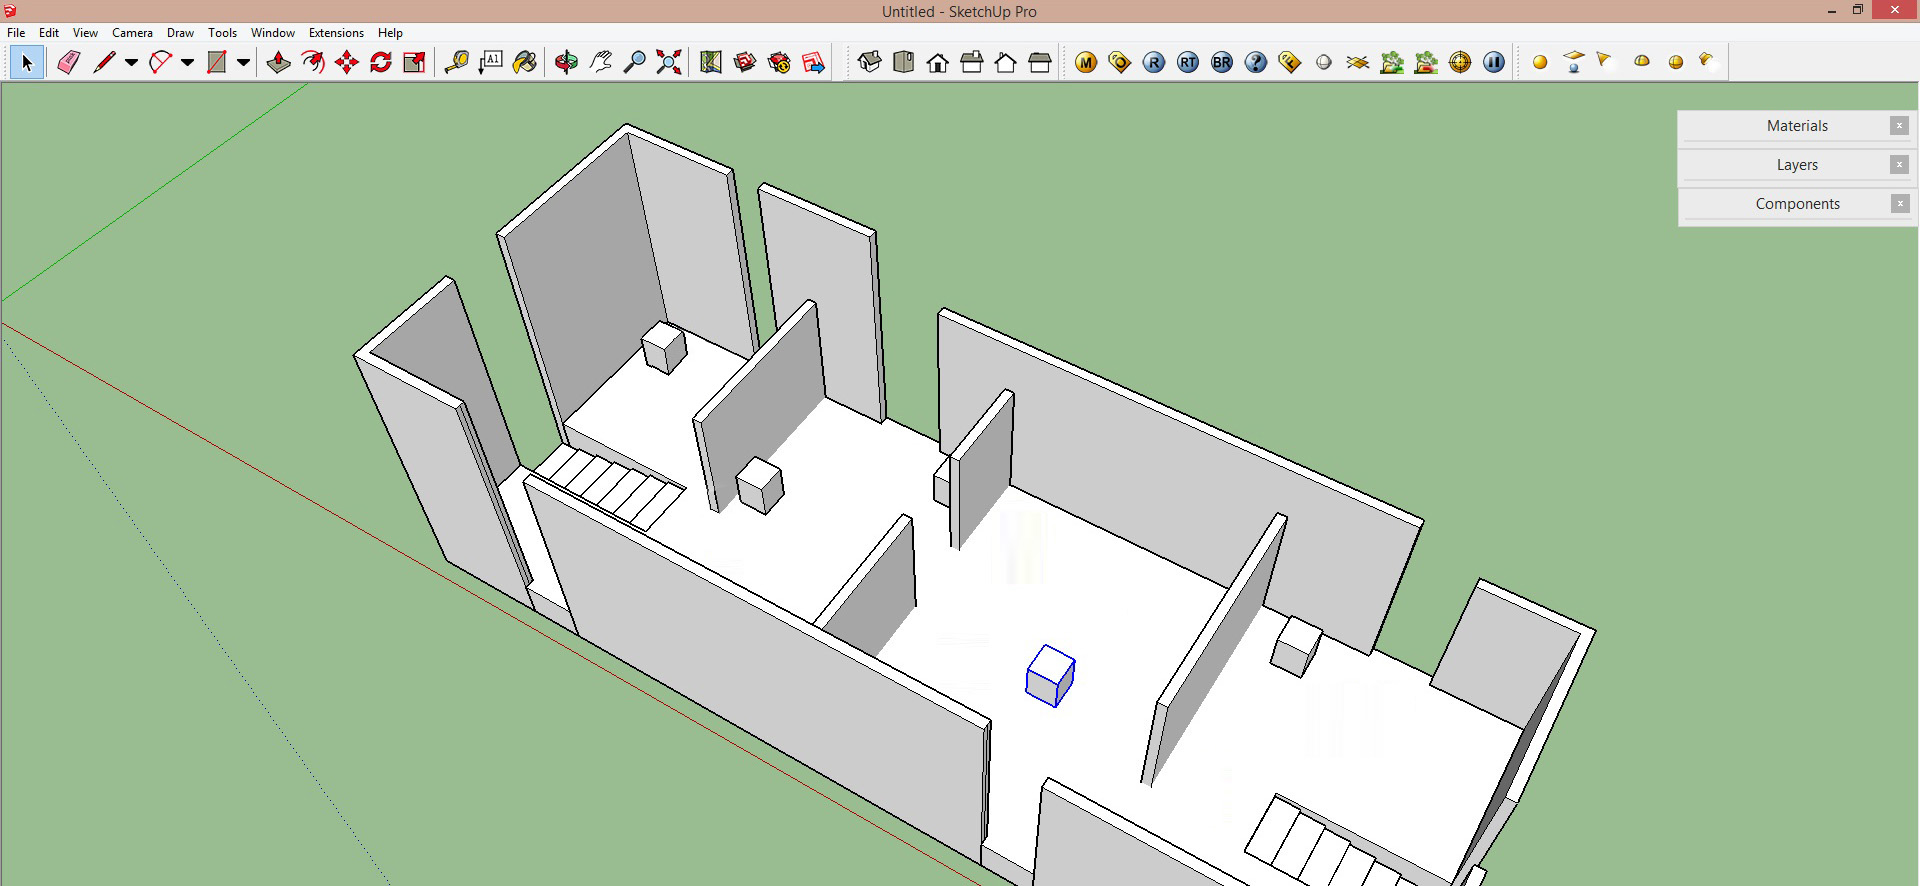 How to Create a Quick Sectional Architecture Drawing in Sketchup and